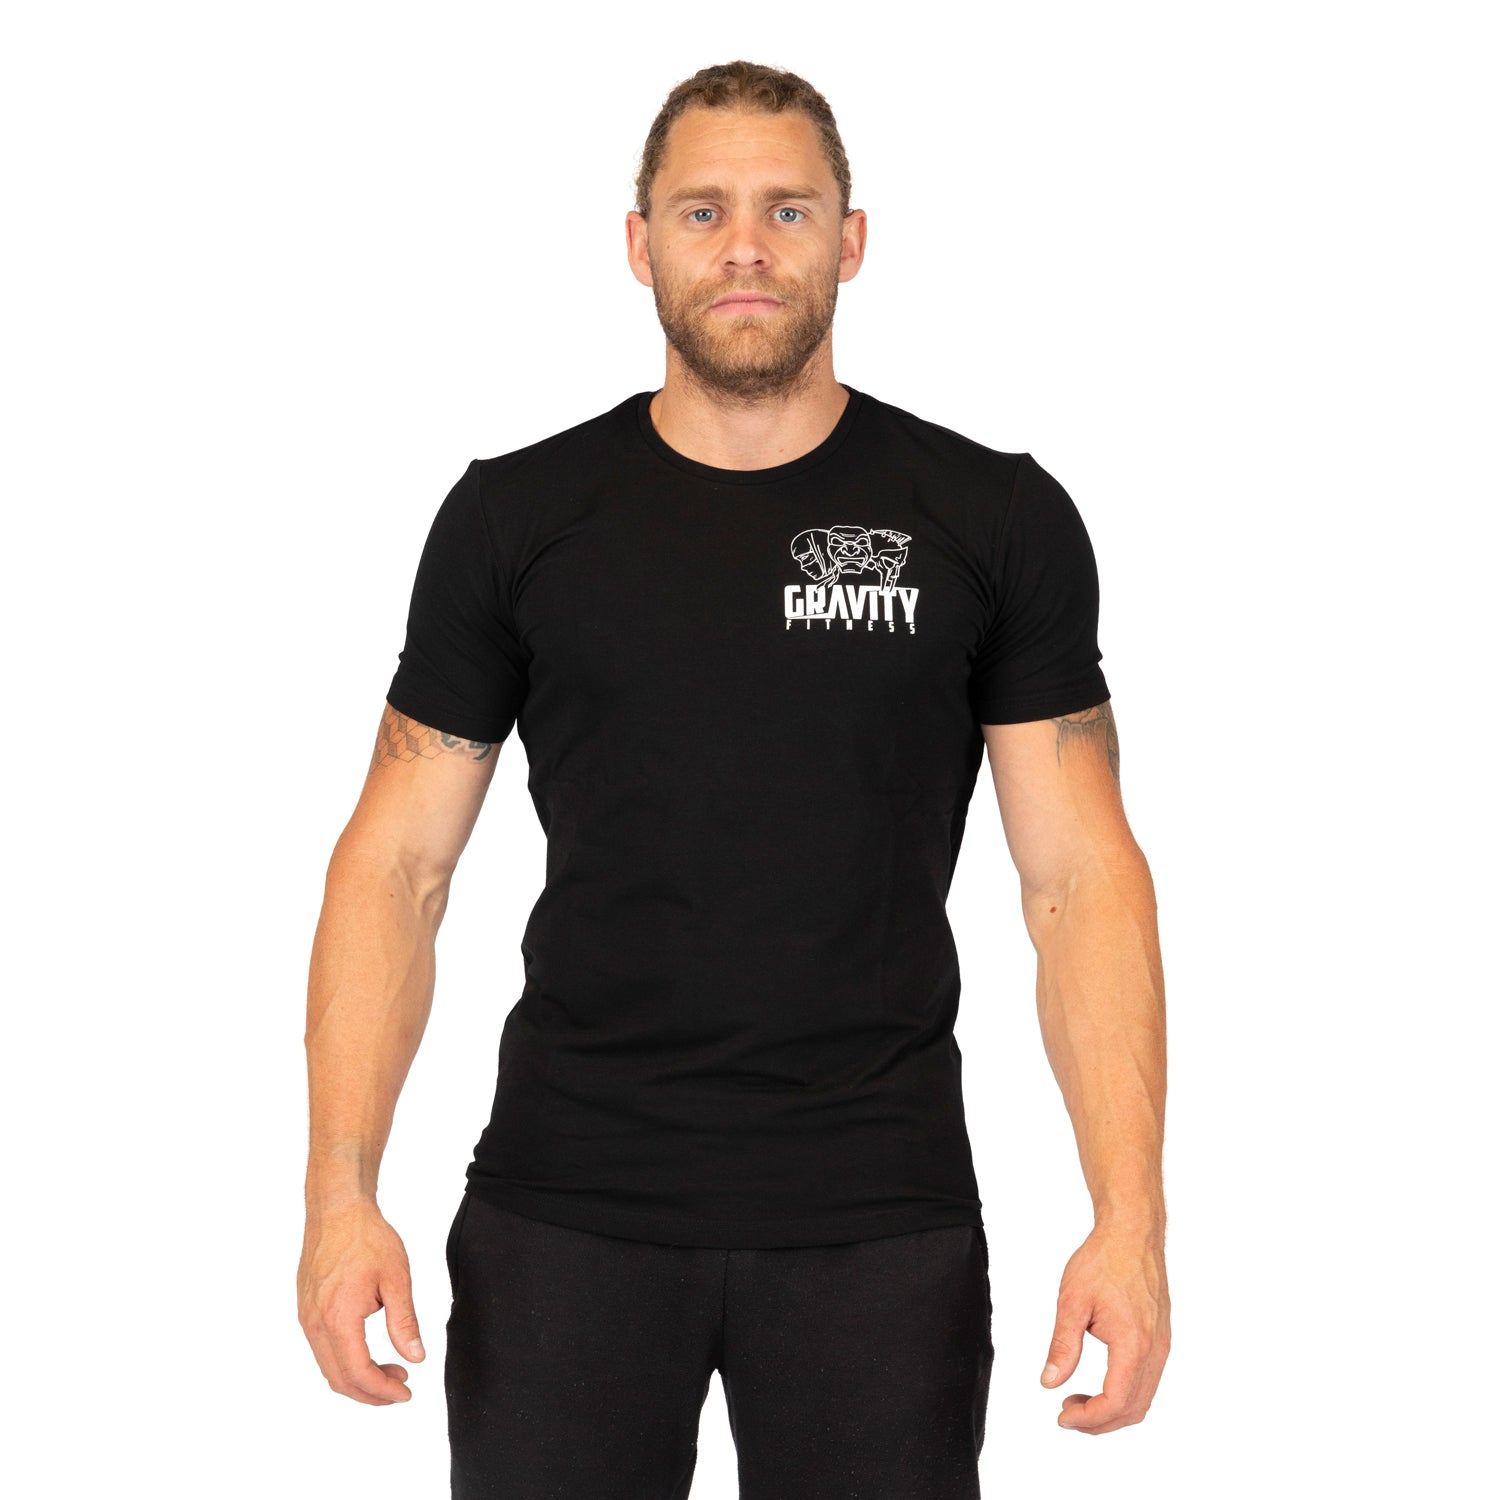 Gravity Fitness Bamboo Training T Shirt - Black